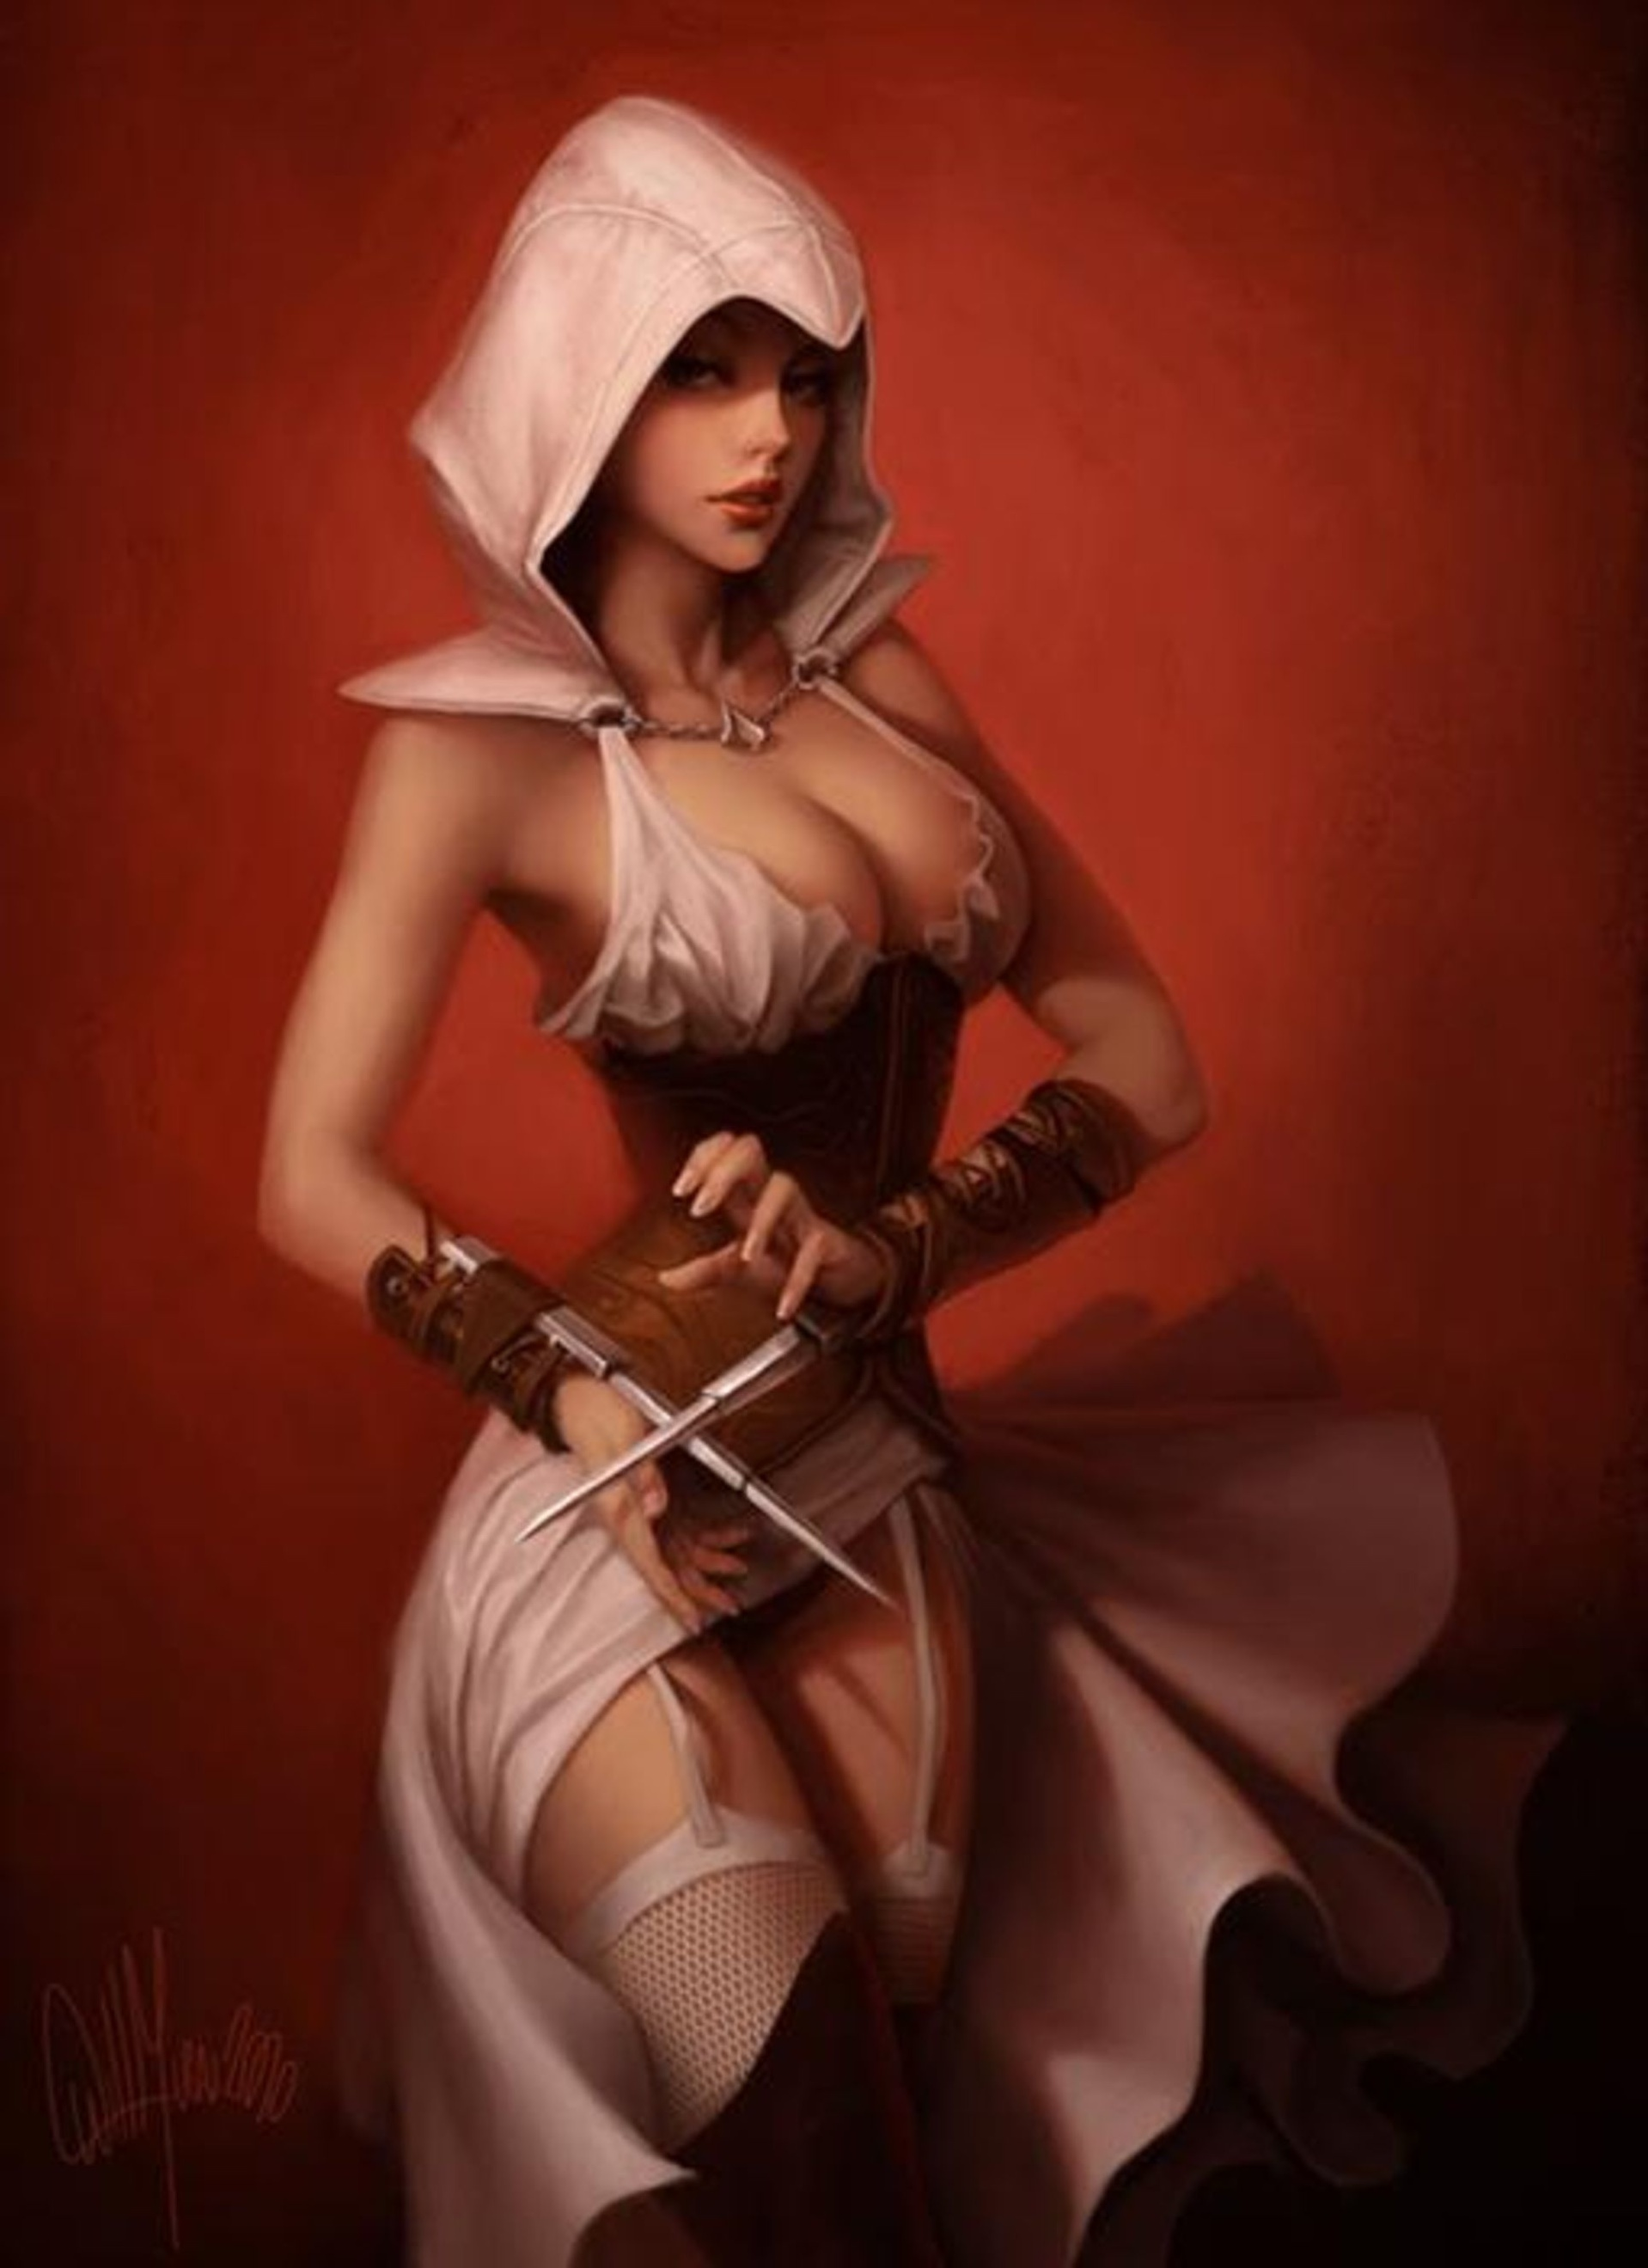 Assassin creed brotherhood girl xxx images erotic slave